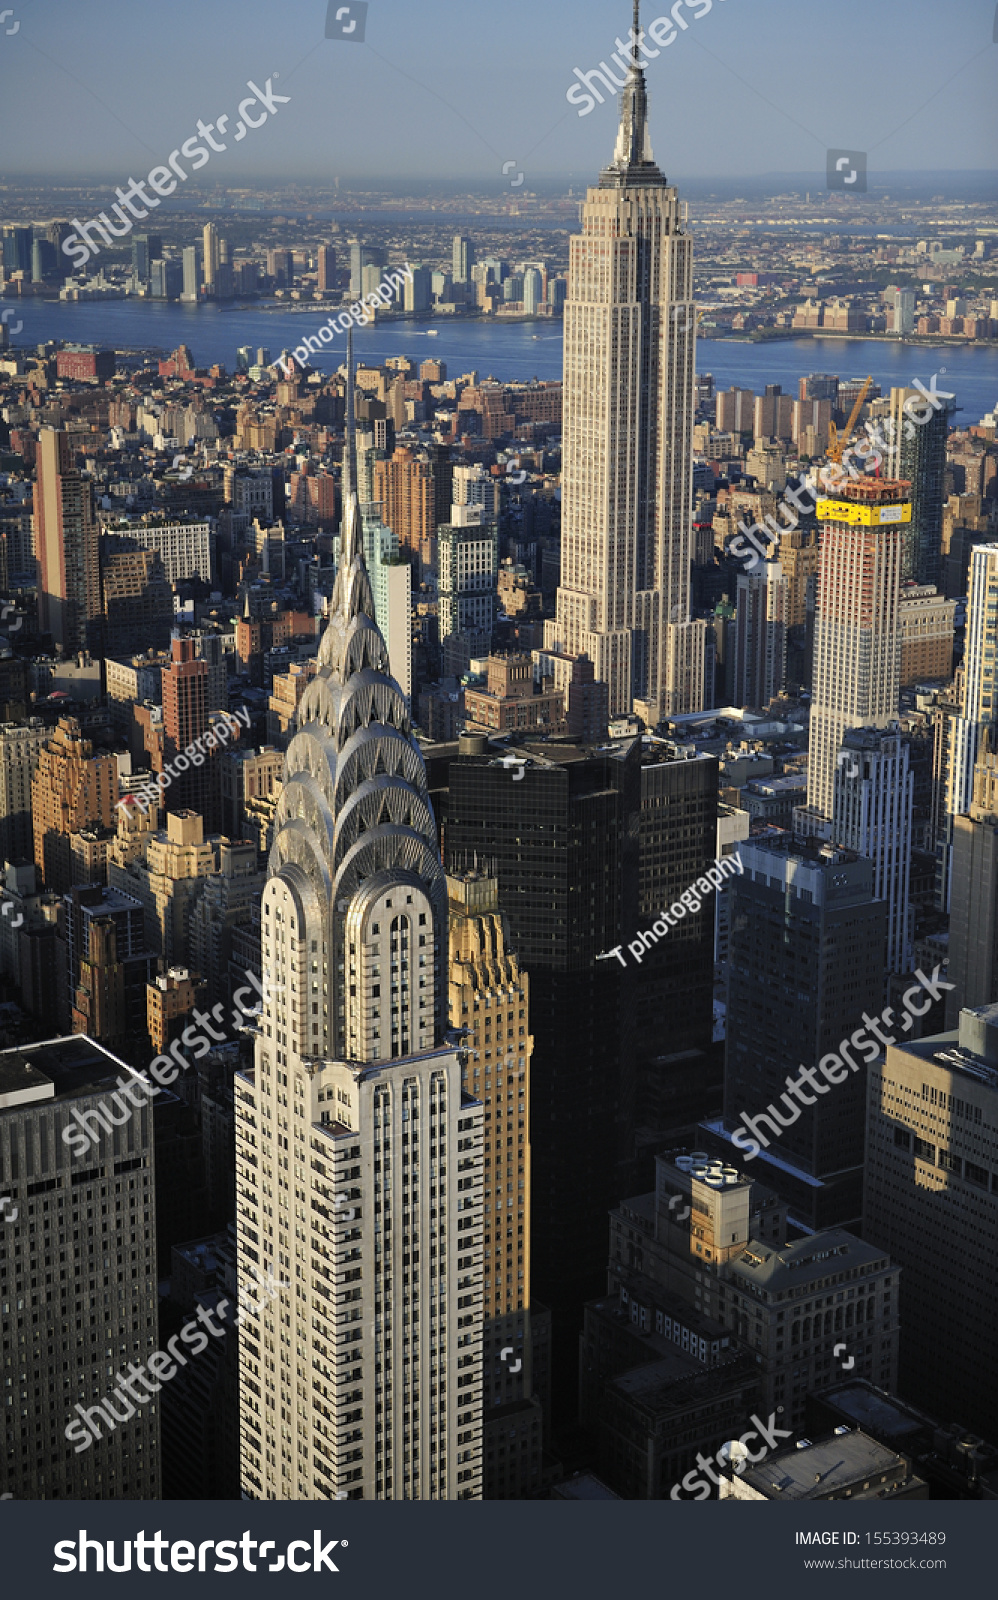 aerial view new york city skyline stock photo 155393489 shutterstock. Black Bedroom Furniture Sets. Home Design Ideas